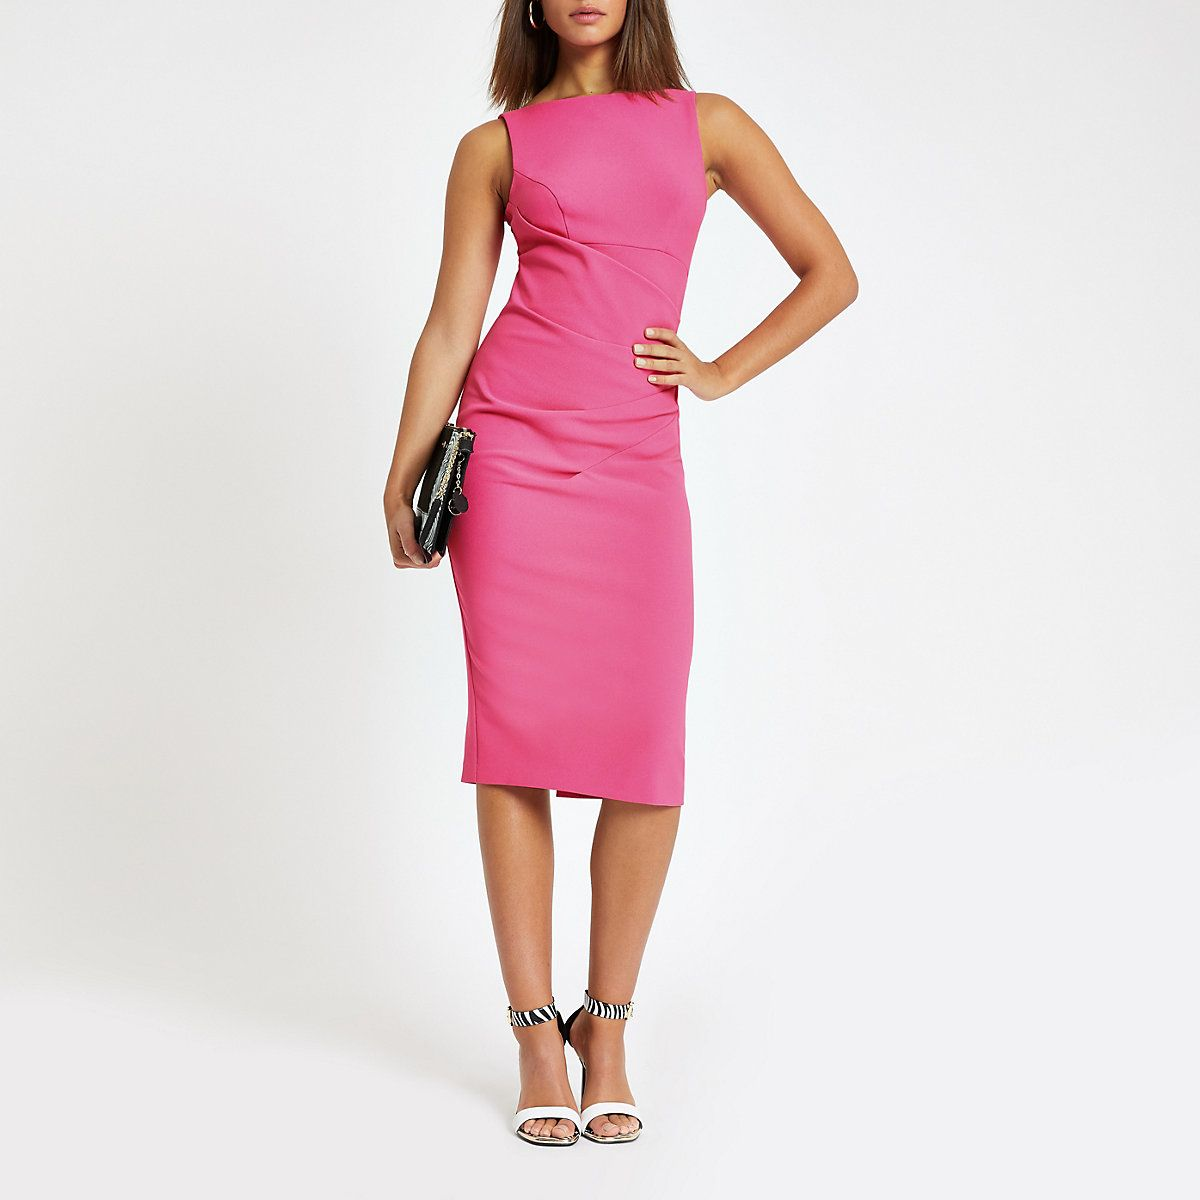 Pin By Smart Casual Women Clothes A On Smart Casual To Buy River Island Fall Winter 2020 Pink Bodycon Midi Dress Bright Pink Midi Dress Bright Pink Dresses